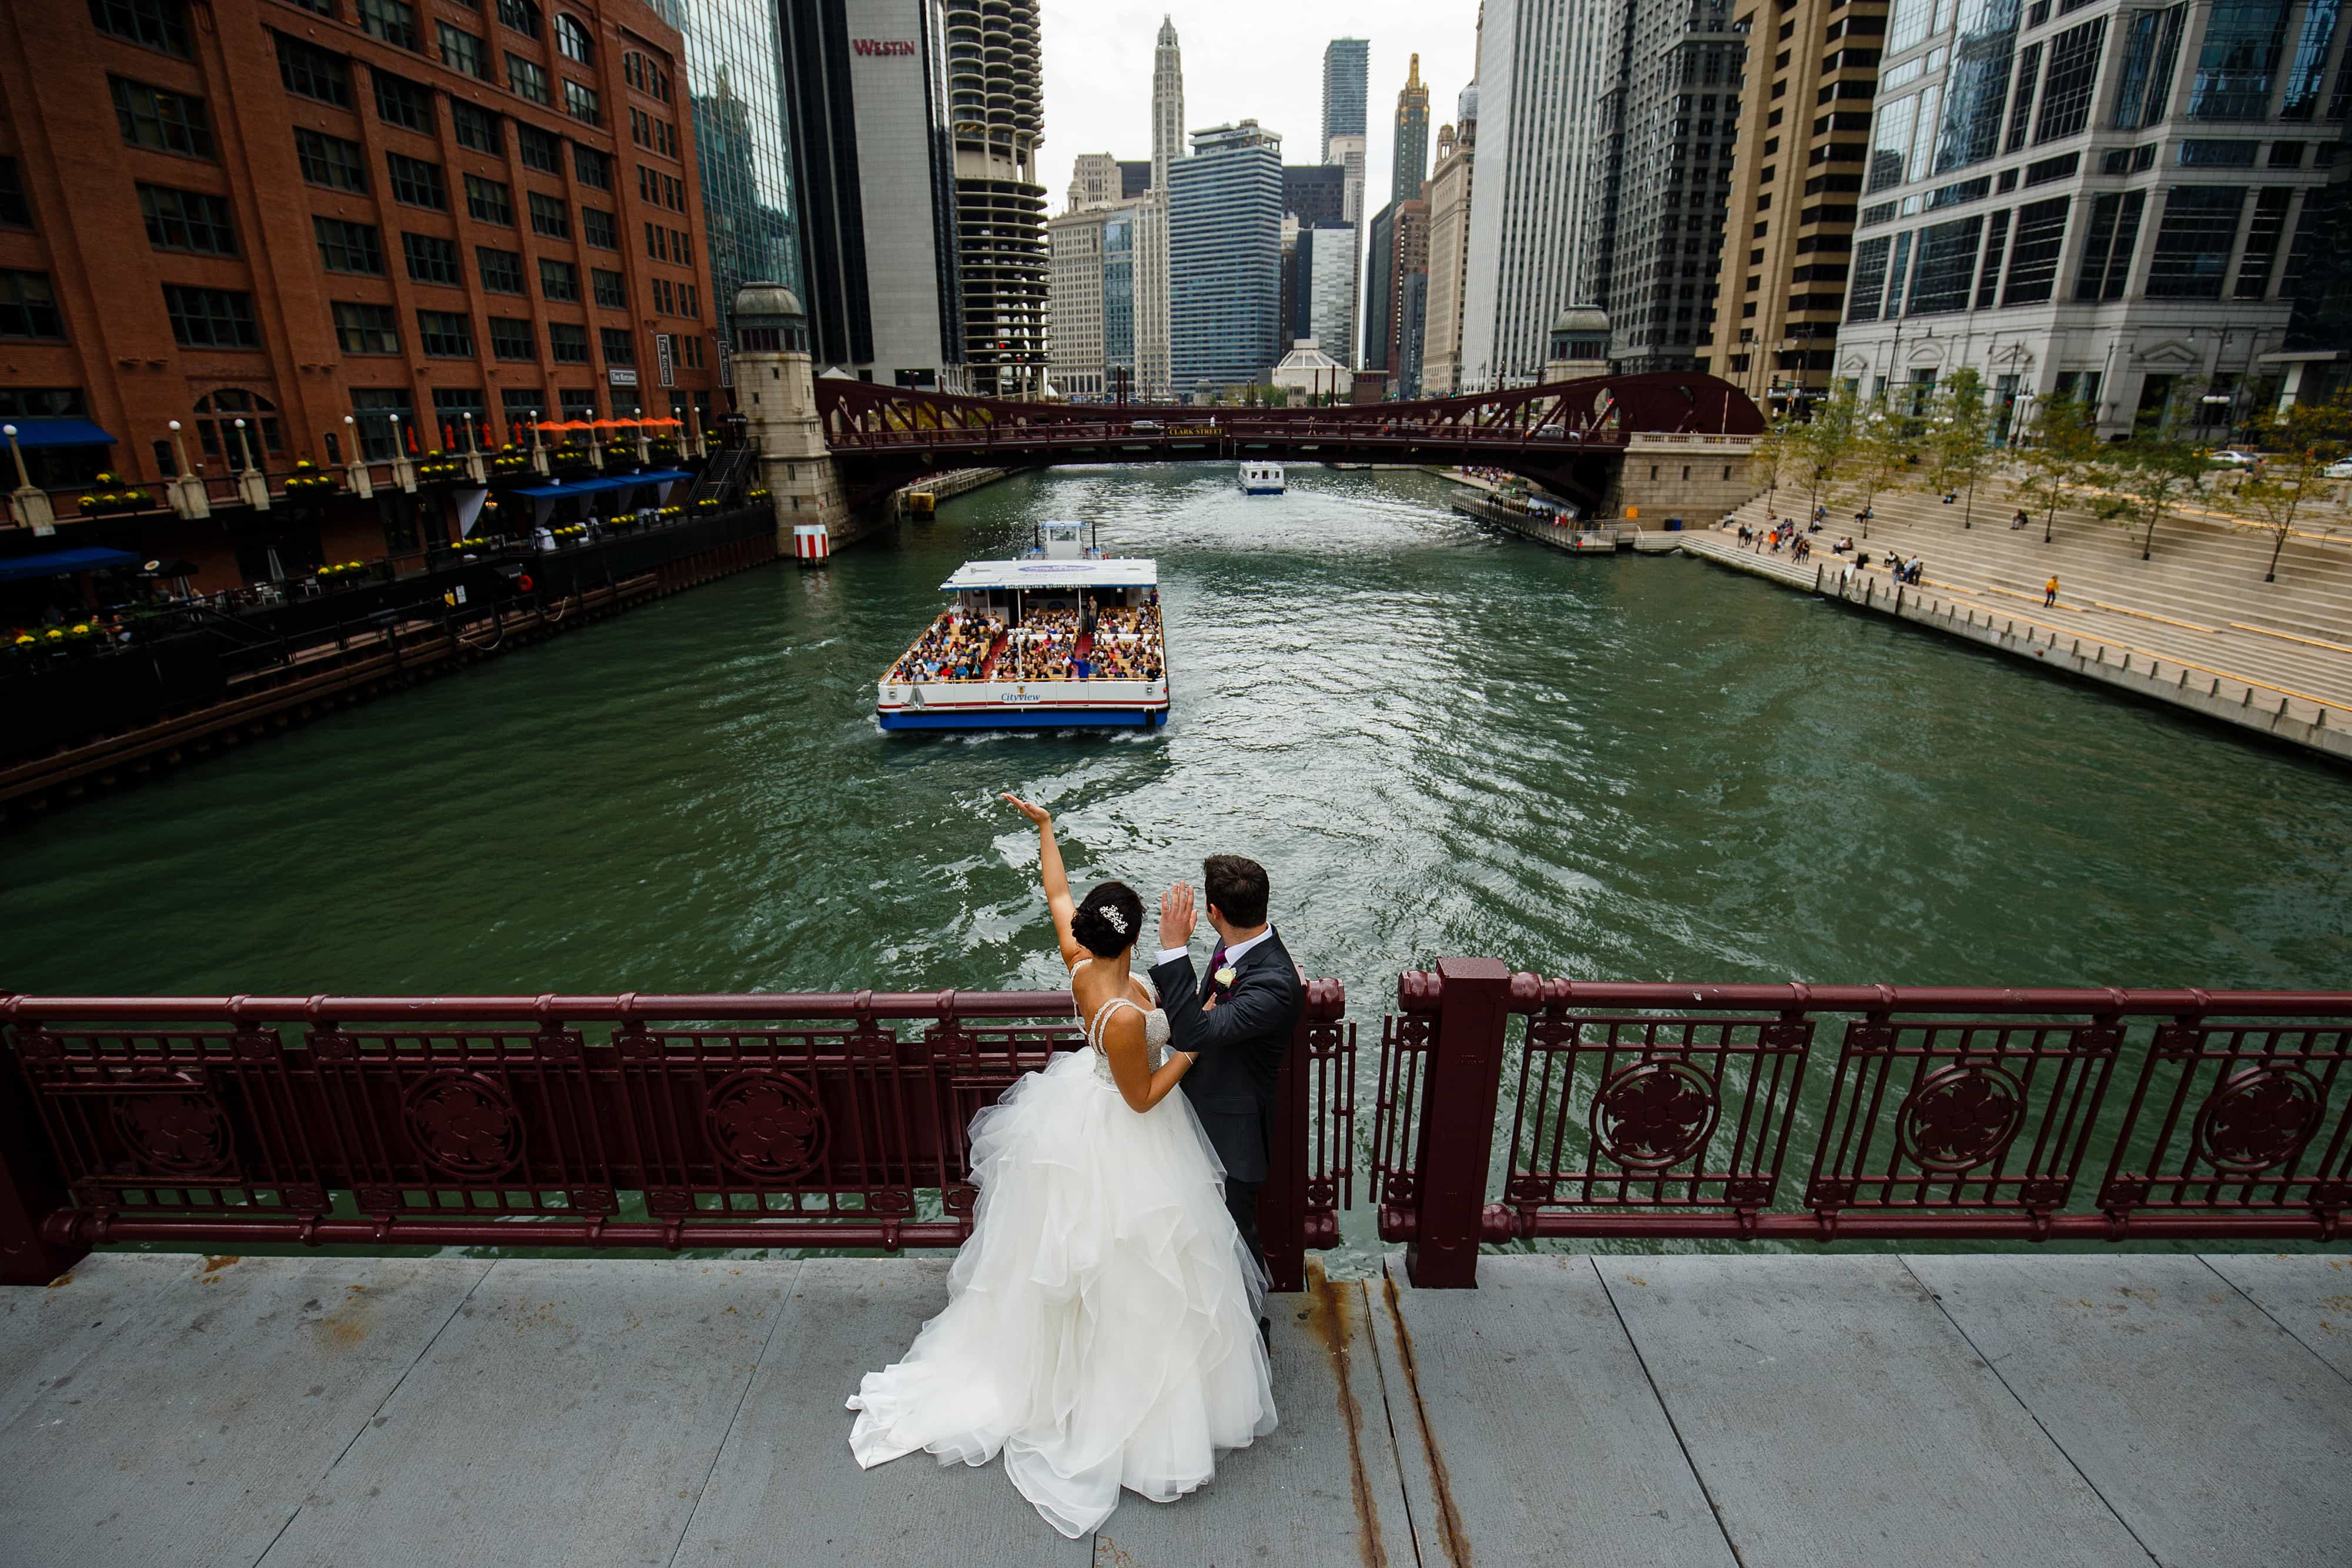 The bride and groom wave to tourists on a boat on the Chicago River during their fall wedding